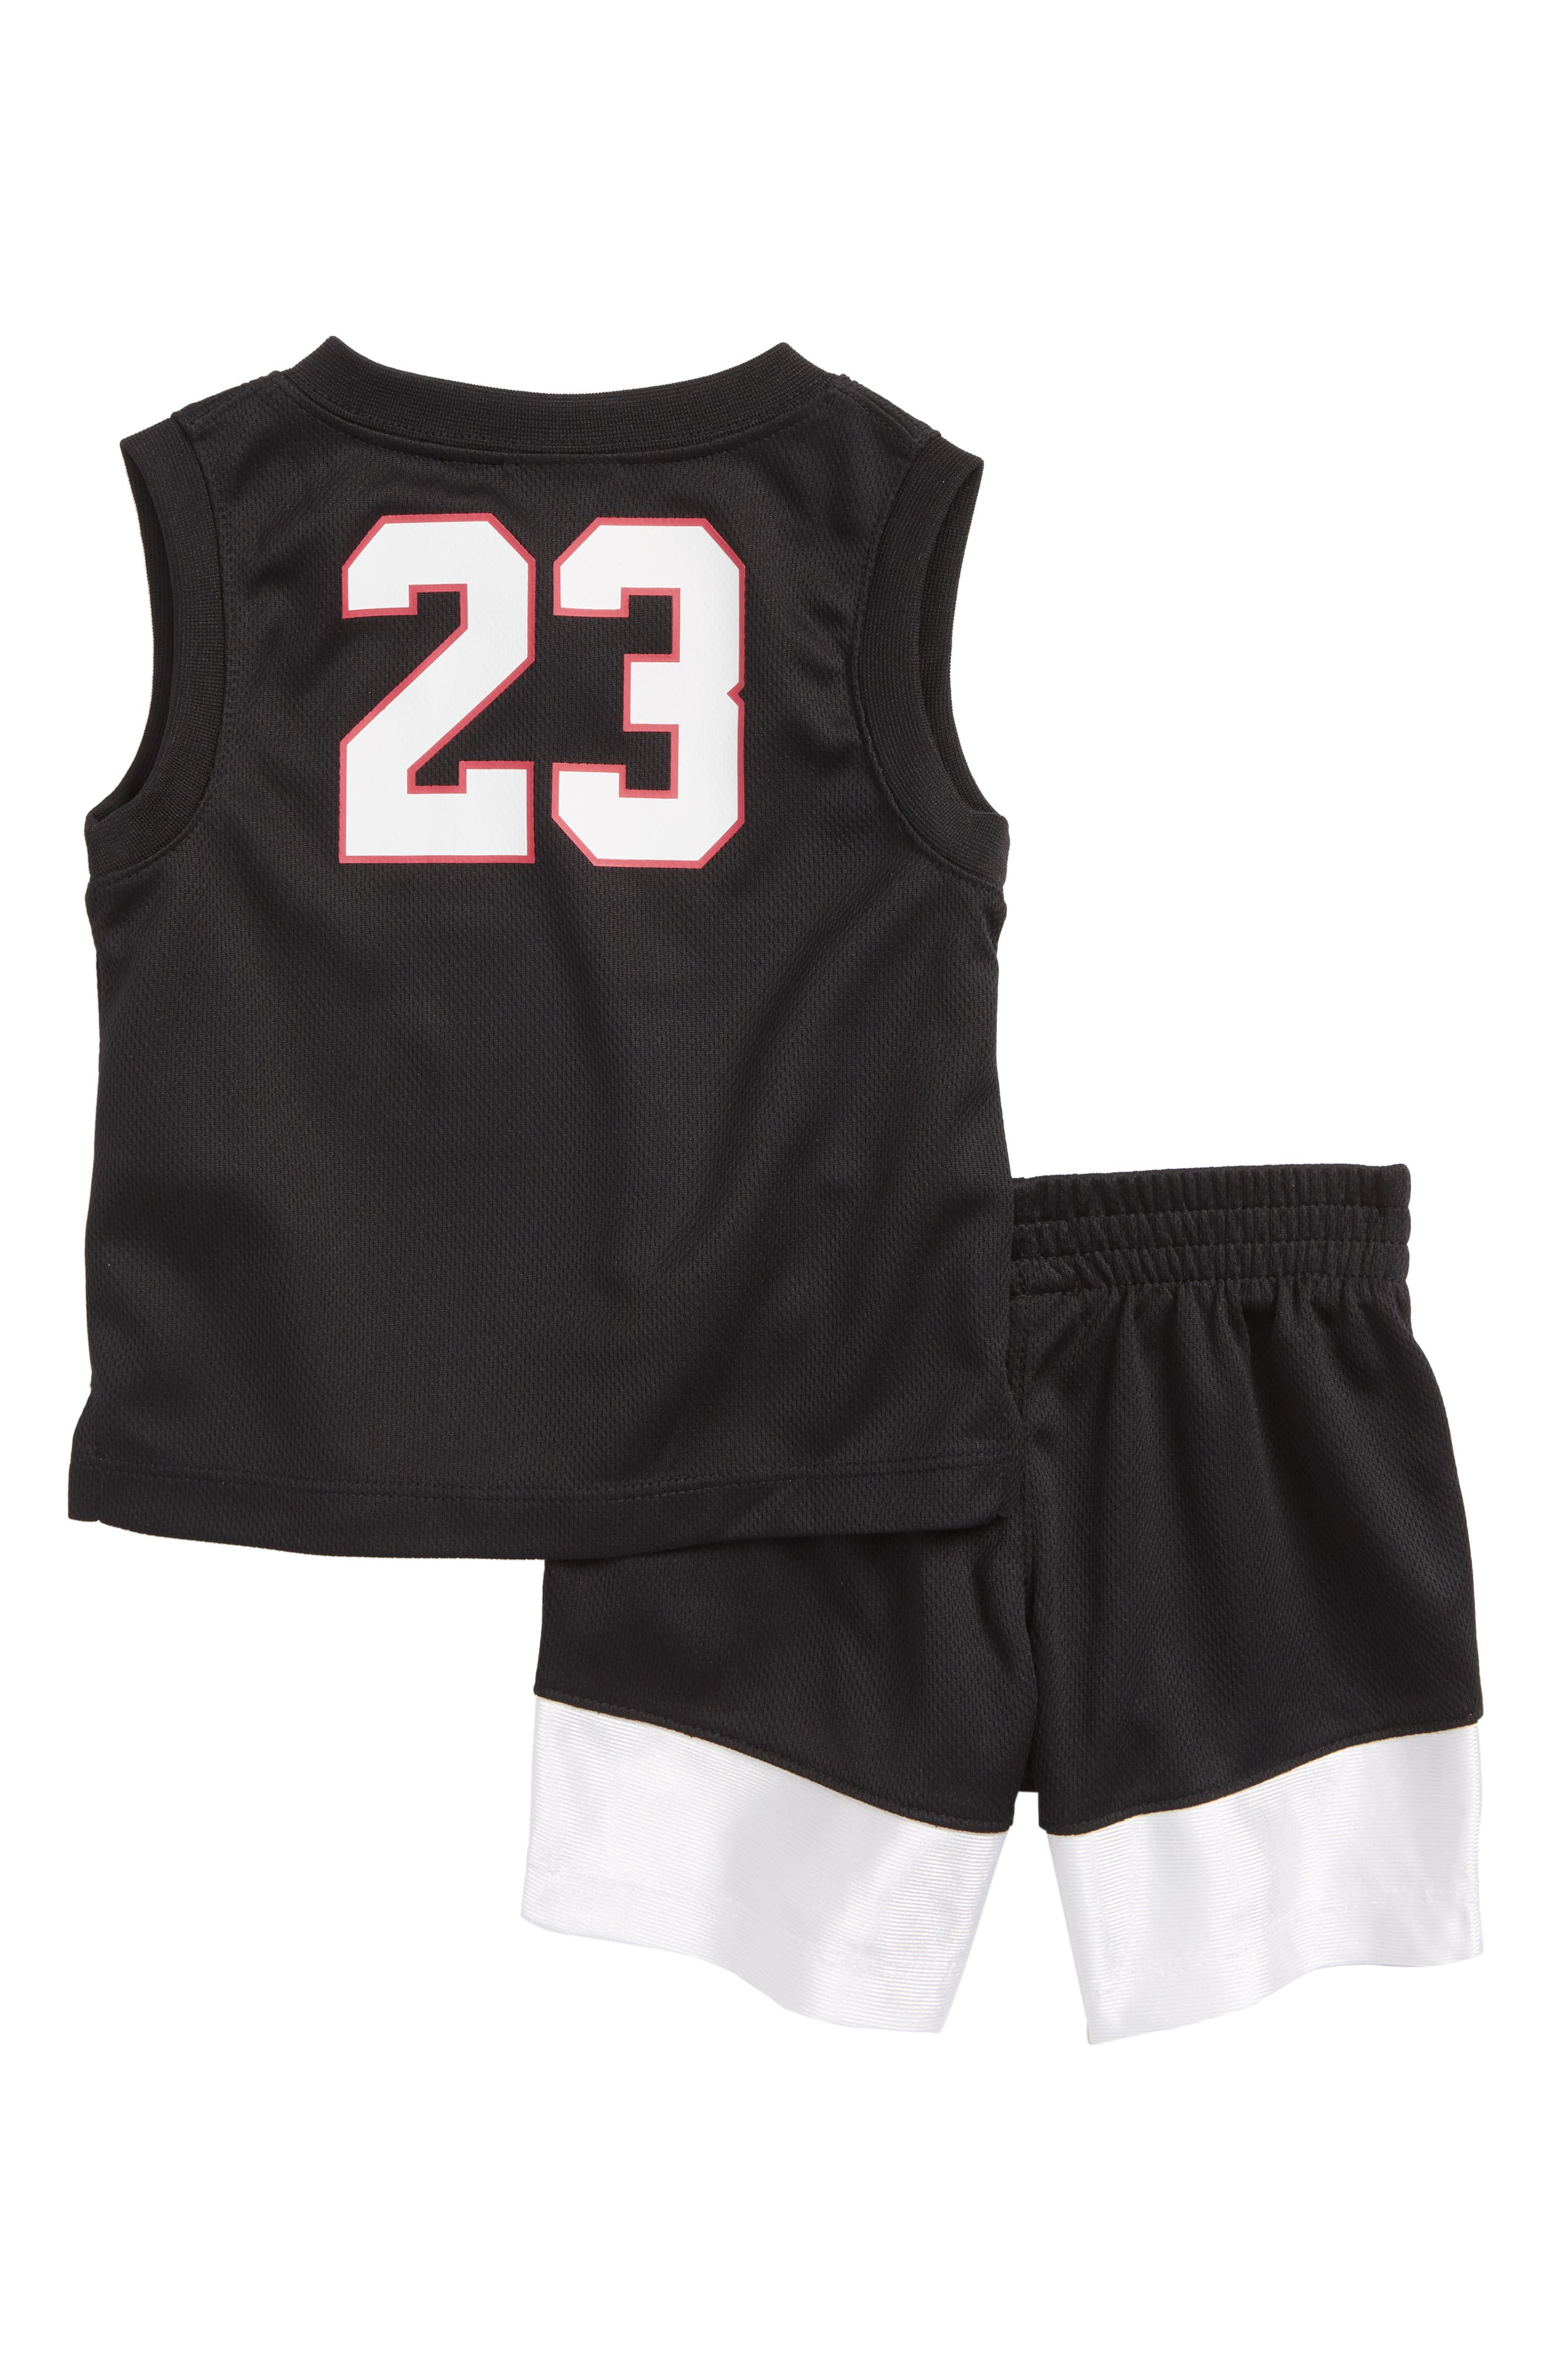 AJ23 Jersey Tank Top & Mesh Shorts Set,                             Alternate thumbnail 2, color,                             Black